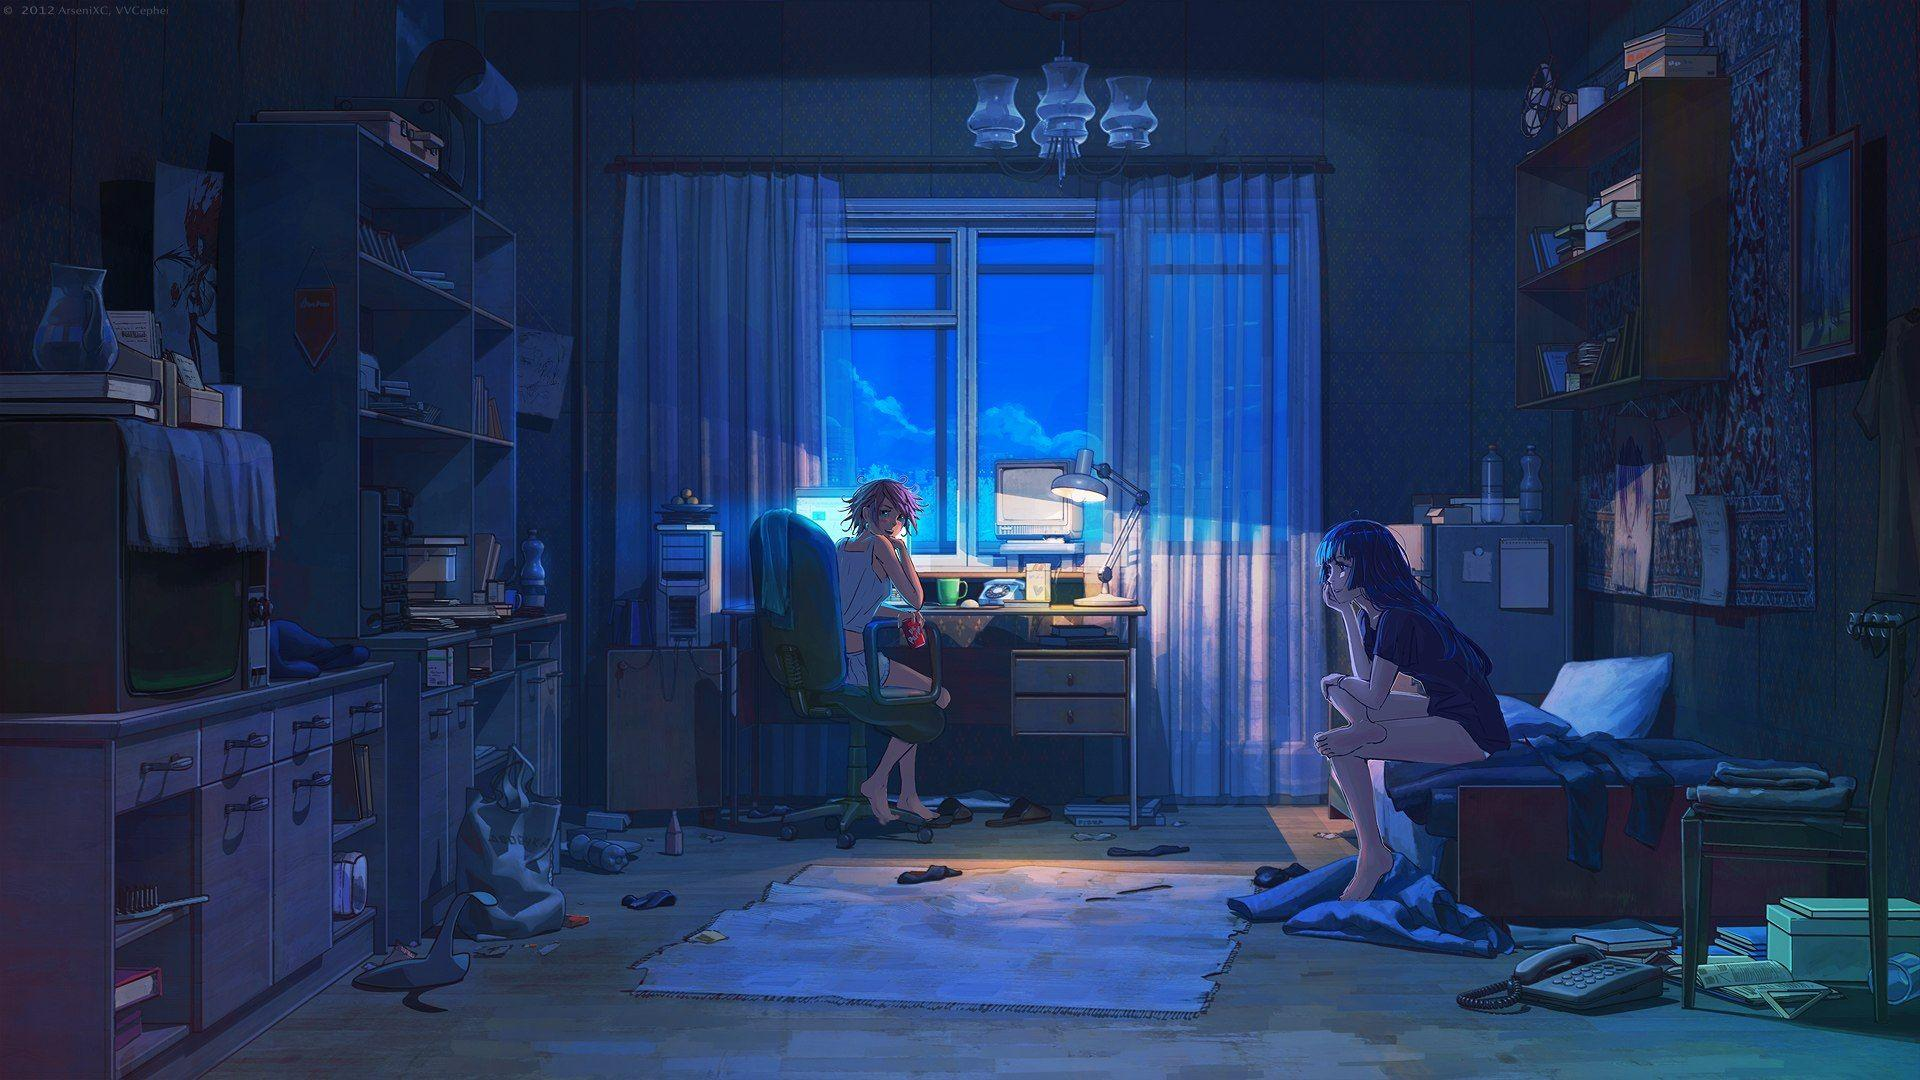 Anime Backgrounds Bedroom Anime Wallpapers